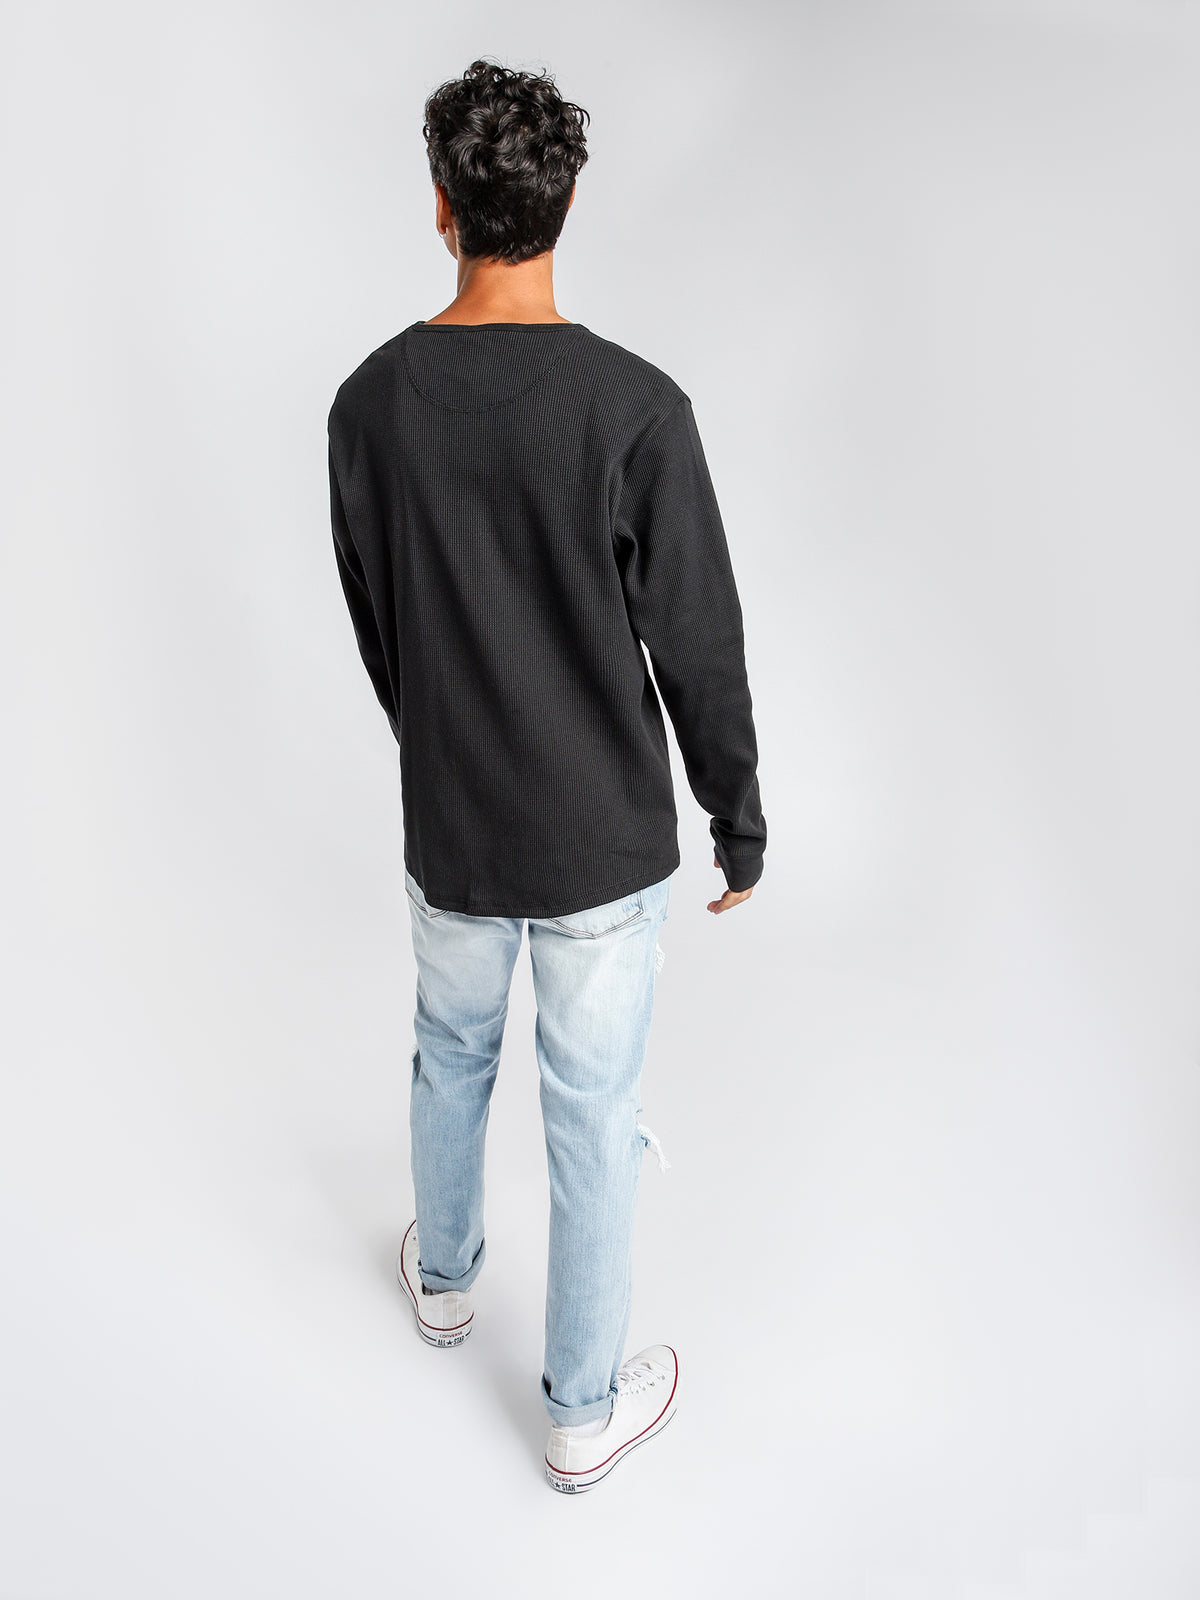 Waffle Long Sleeve Crew Top in Black